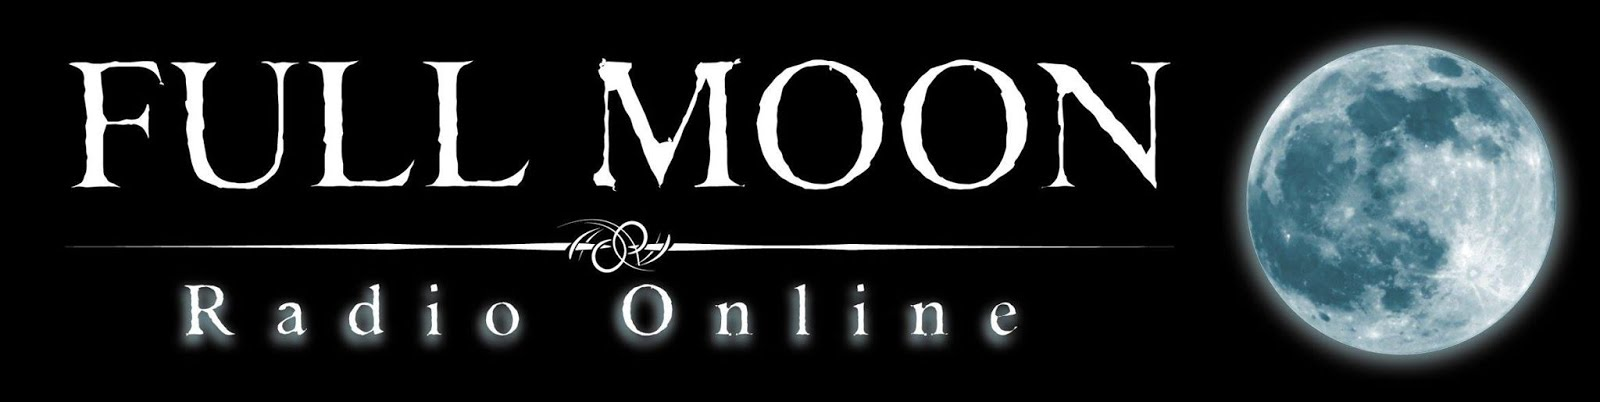 Full Moon Radio Online